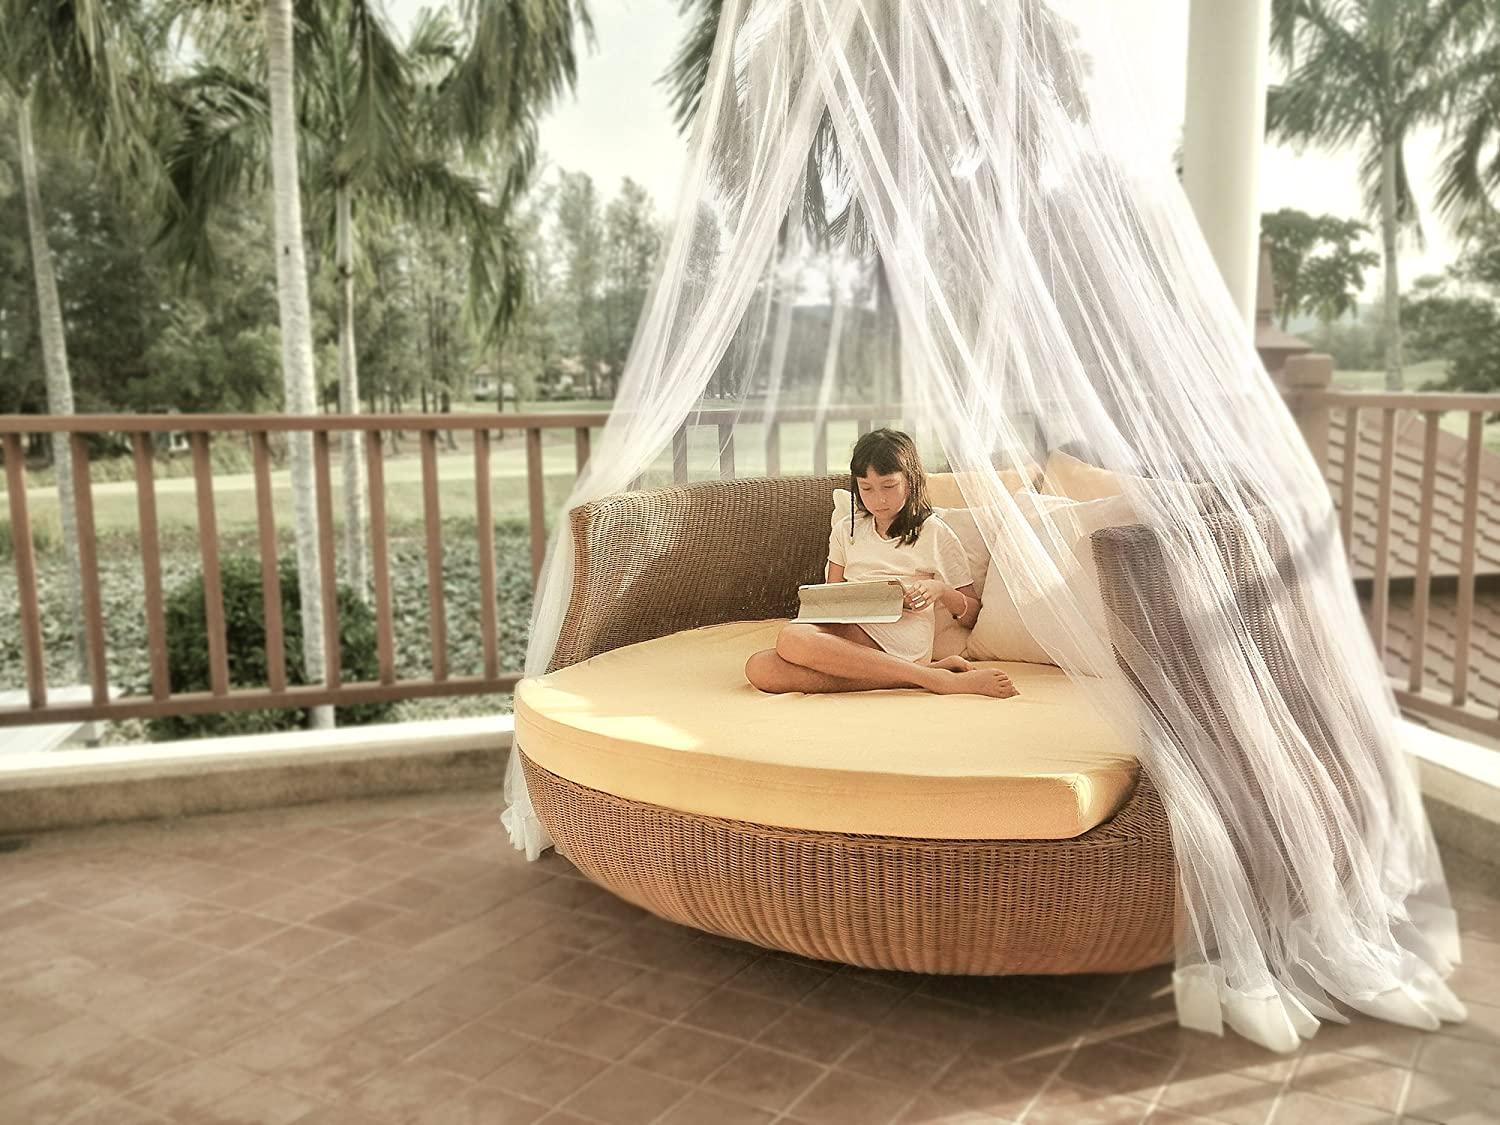 Timbuktoo Mosquito Nets Luxury Mosquito NET - for King to Single Size Beds Quick and Easy Installation System - Unique Internal Loop - 2 Entries - Ripstop Stuff Sack - No Added Chemicals.: Home & Kitchen